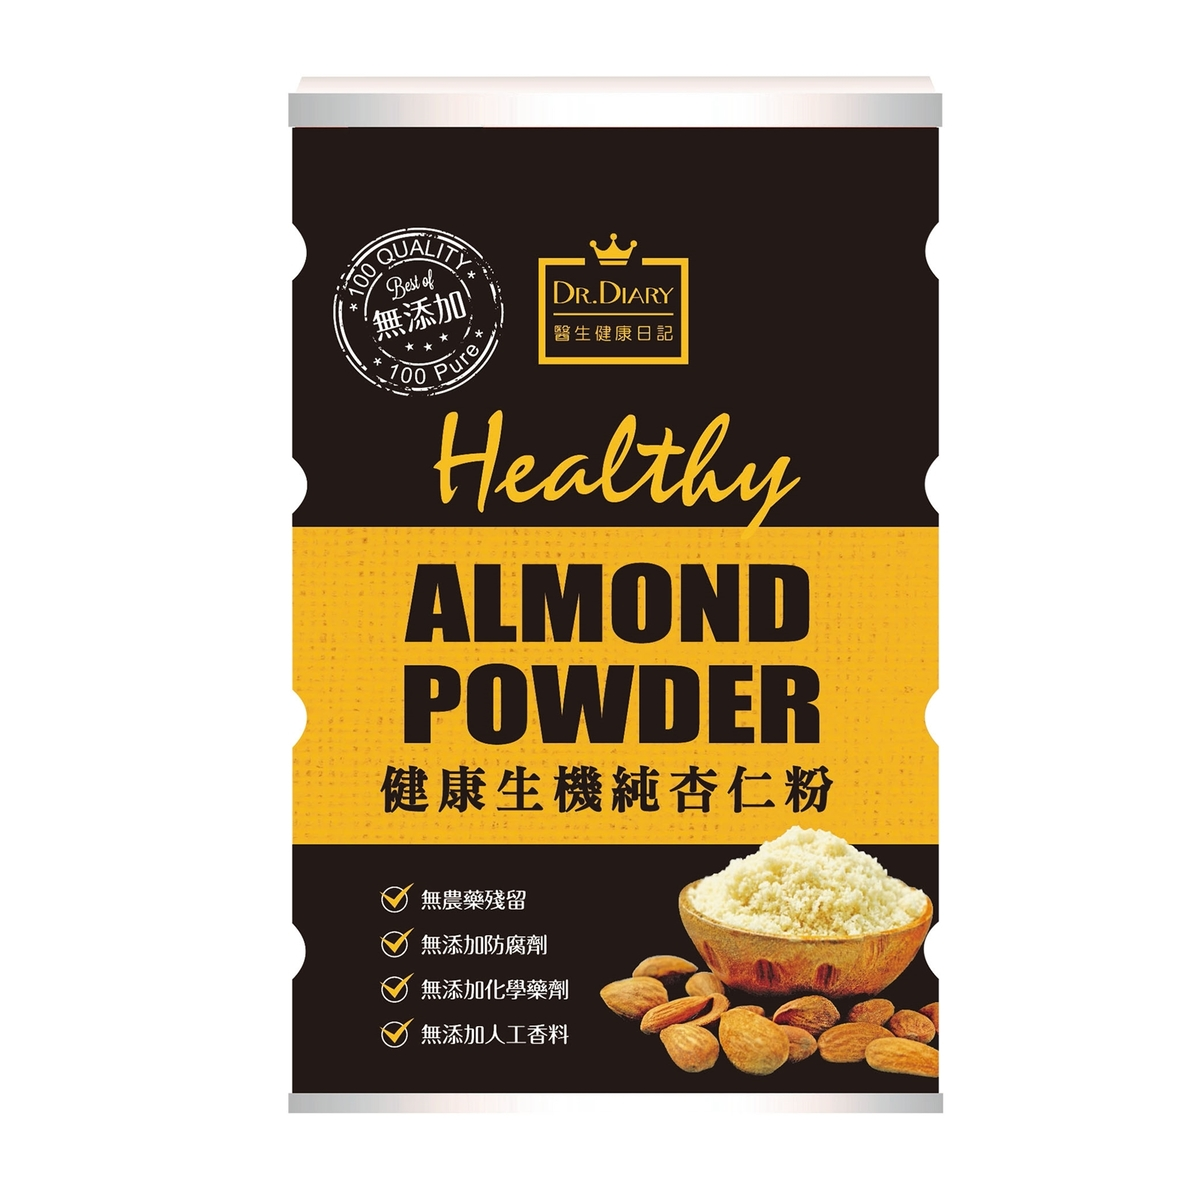 Healthy Almond Powder